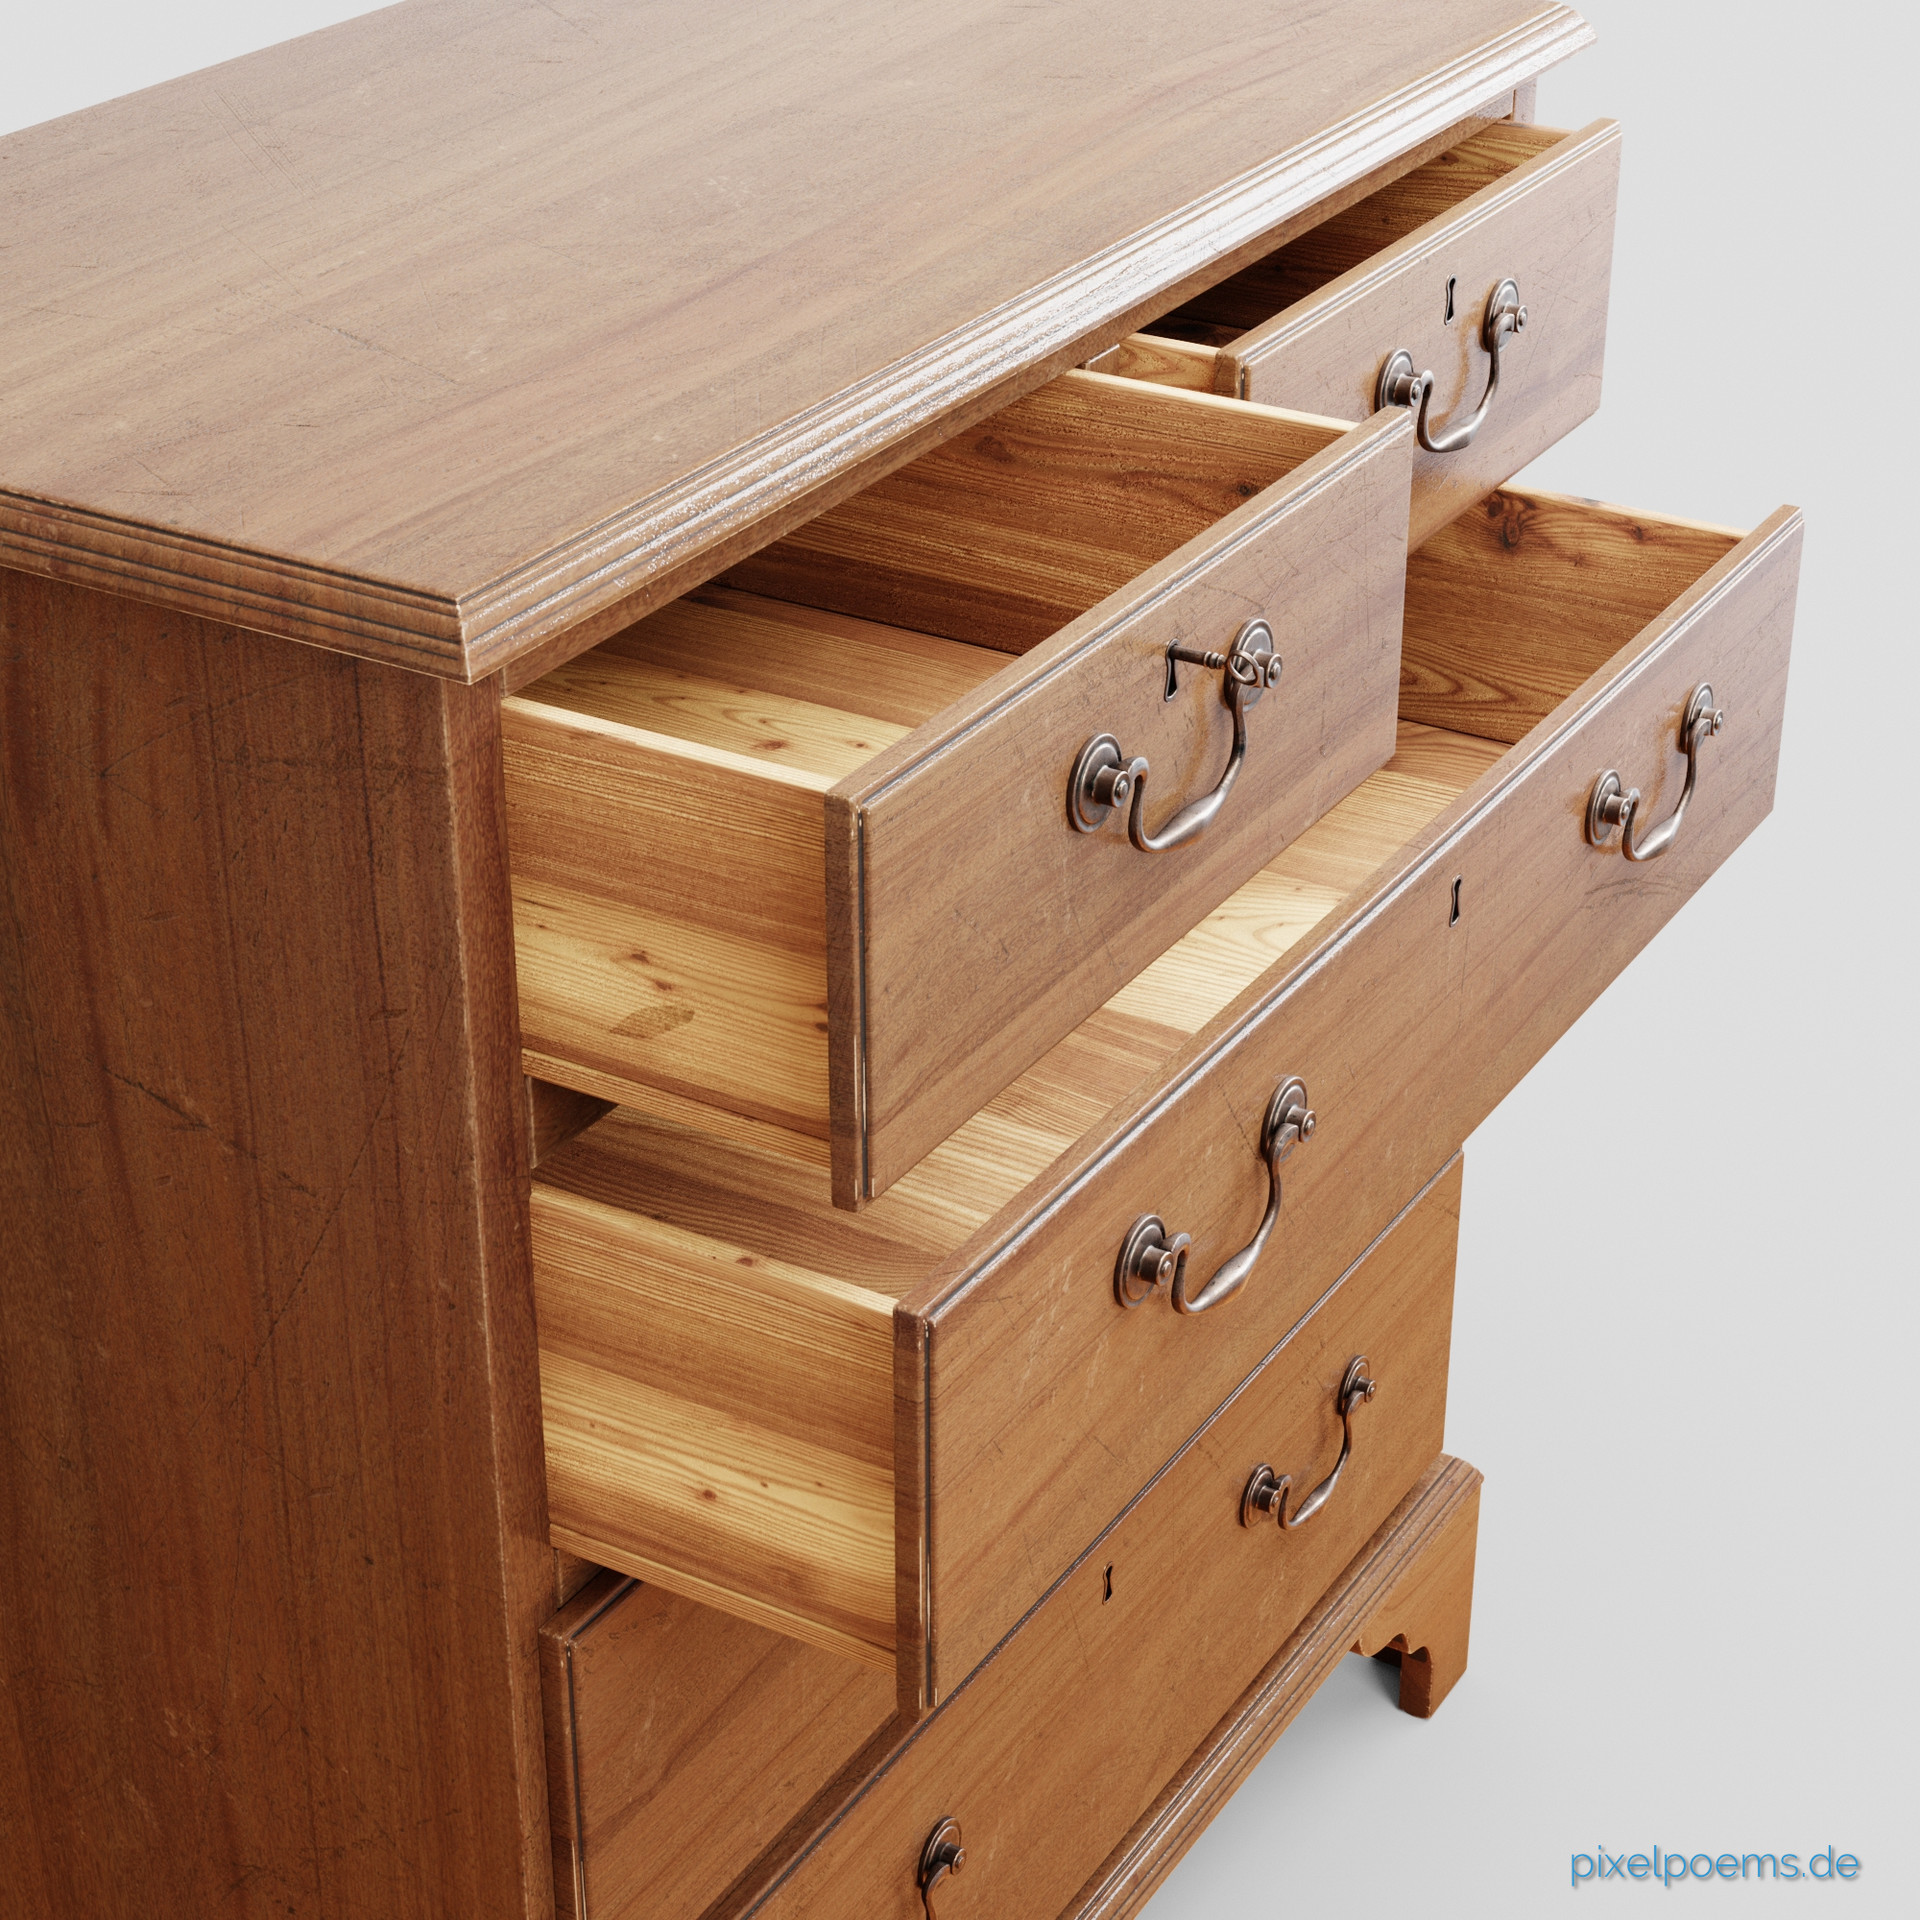 Karl andreas gross mahagony chest of drawers webversion 04